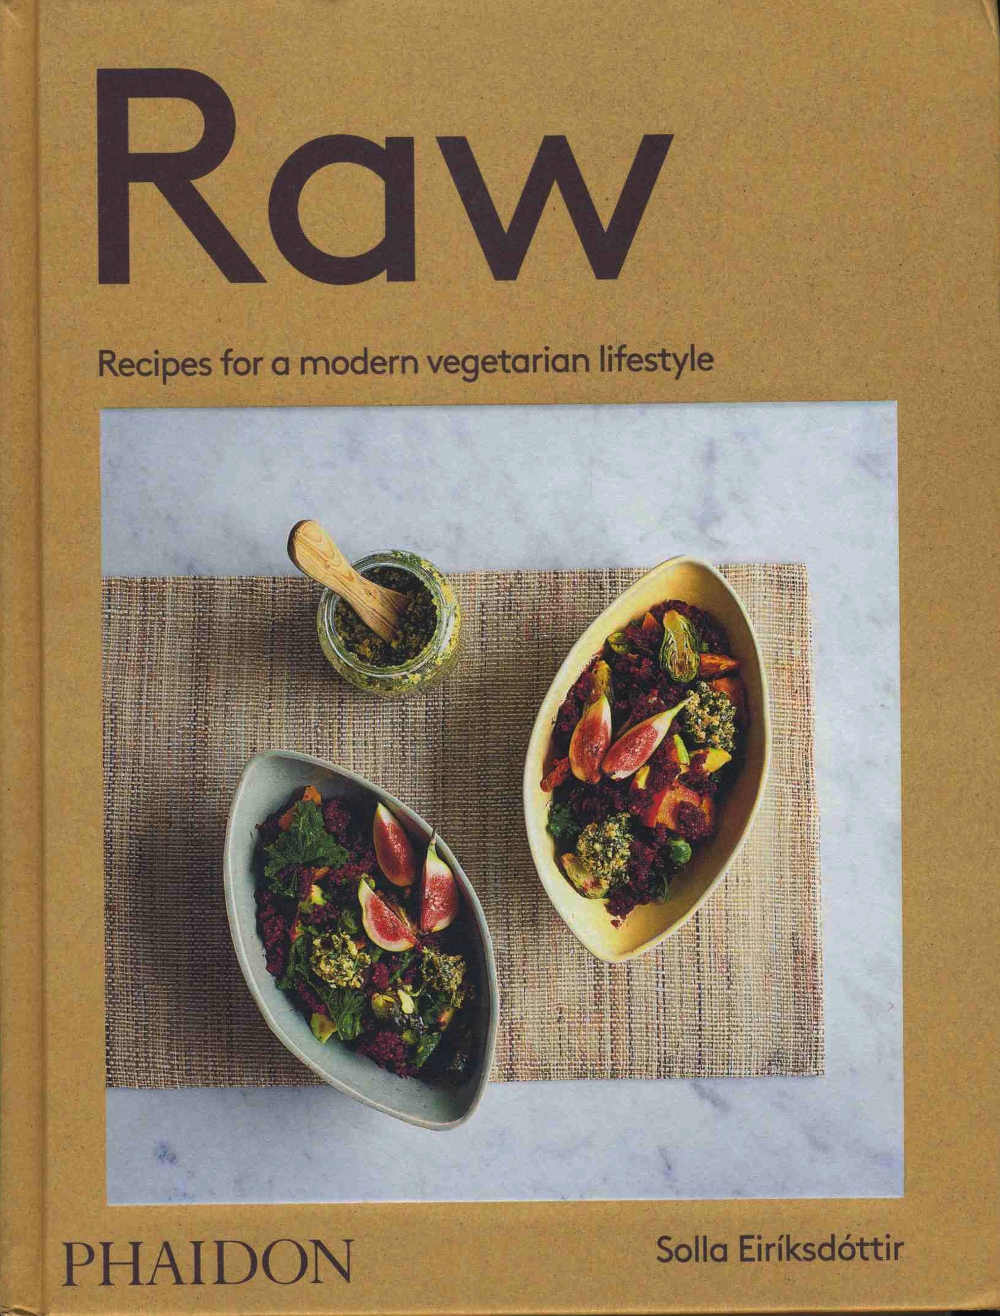 RAW Recipes for Radiant Living by Bernadette Bohan (Gill & Macmillan hardback 204pp photography by Neil Hurley.